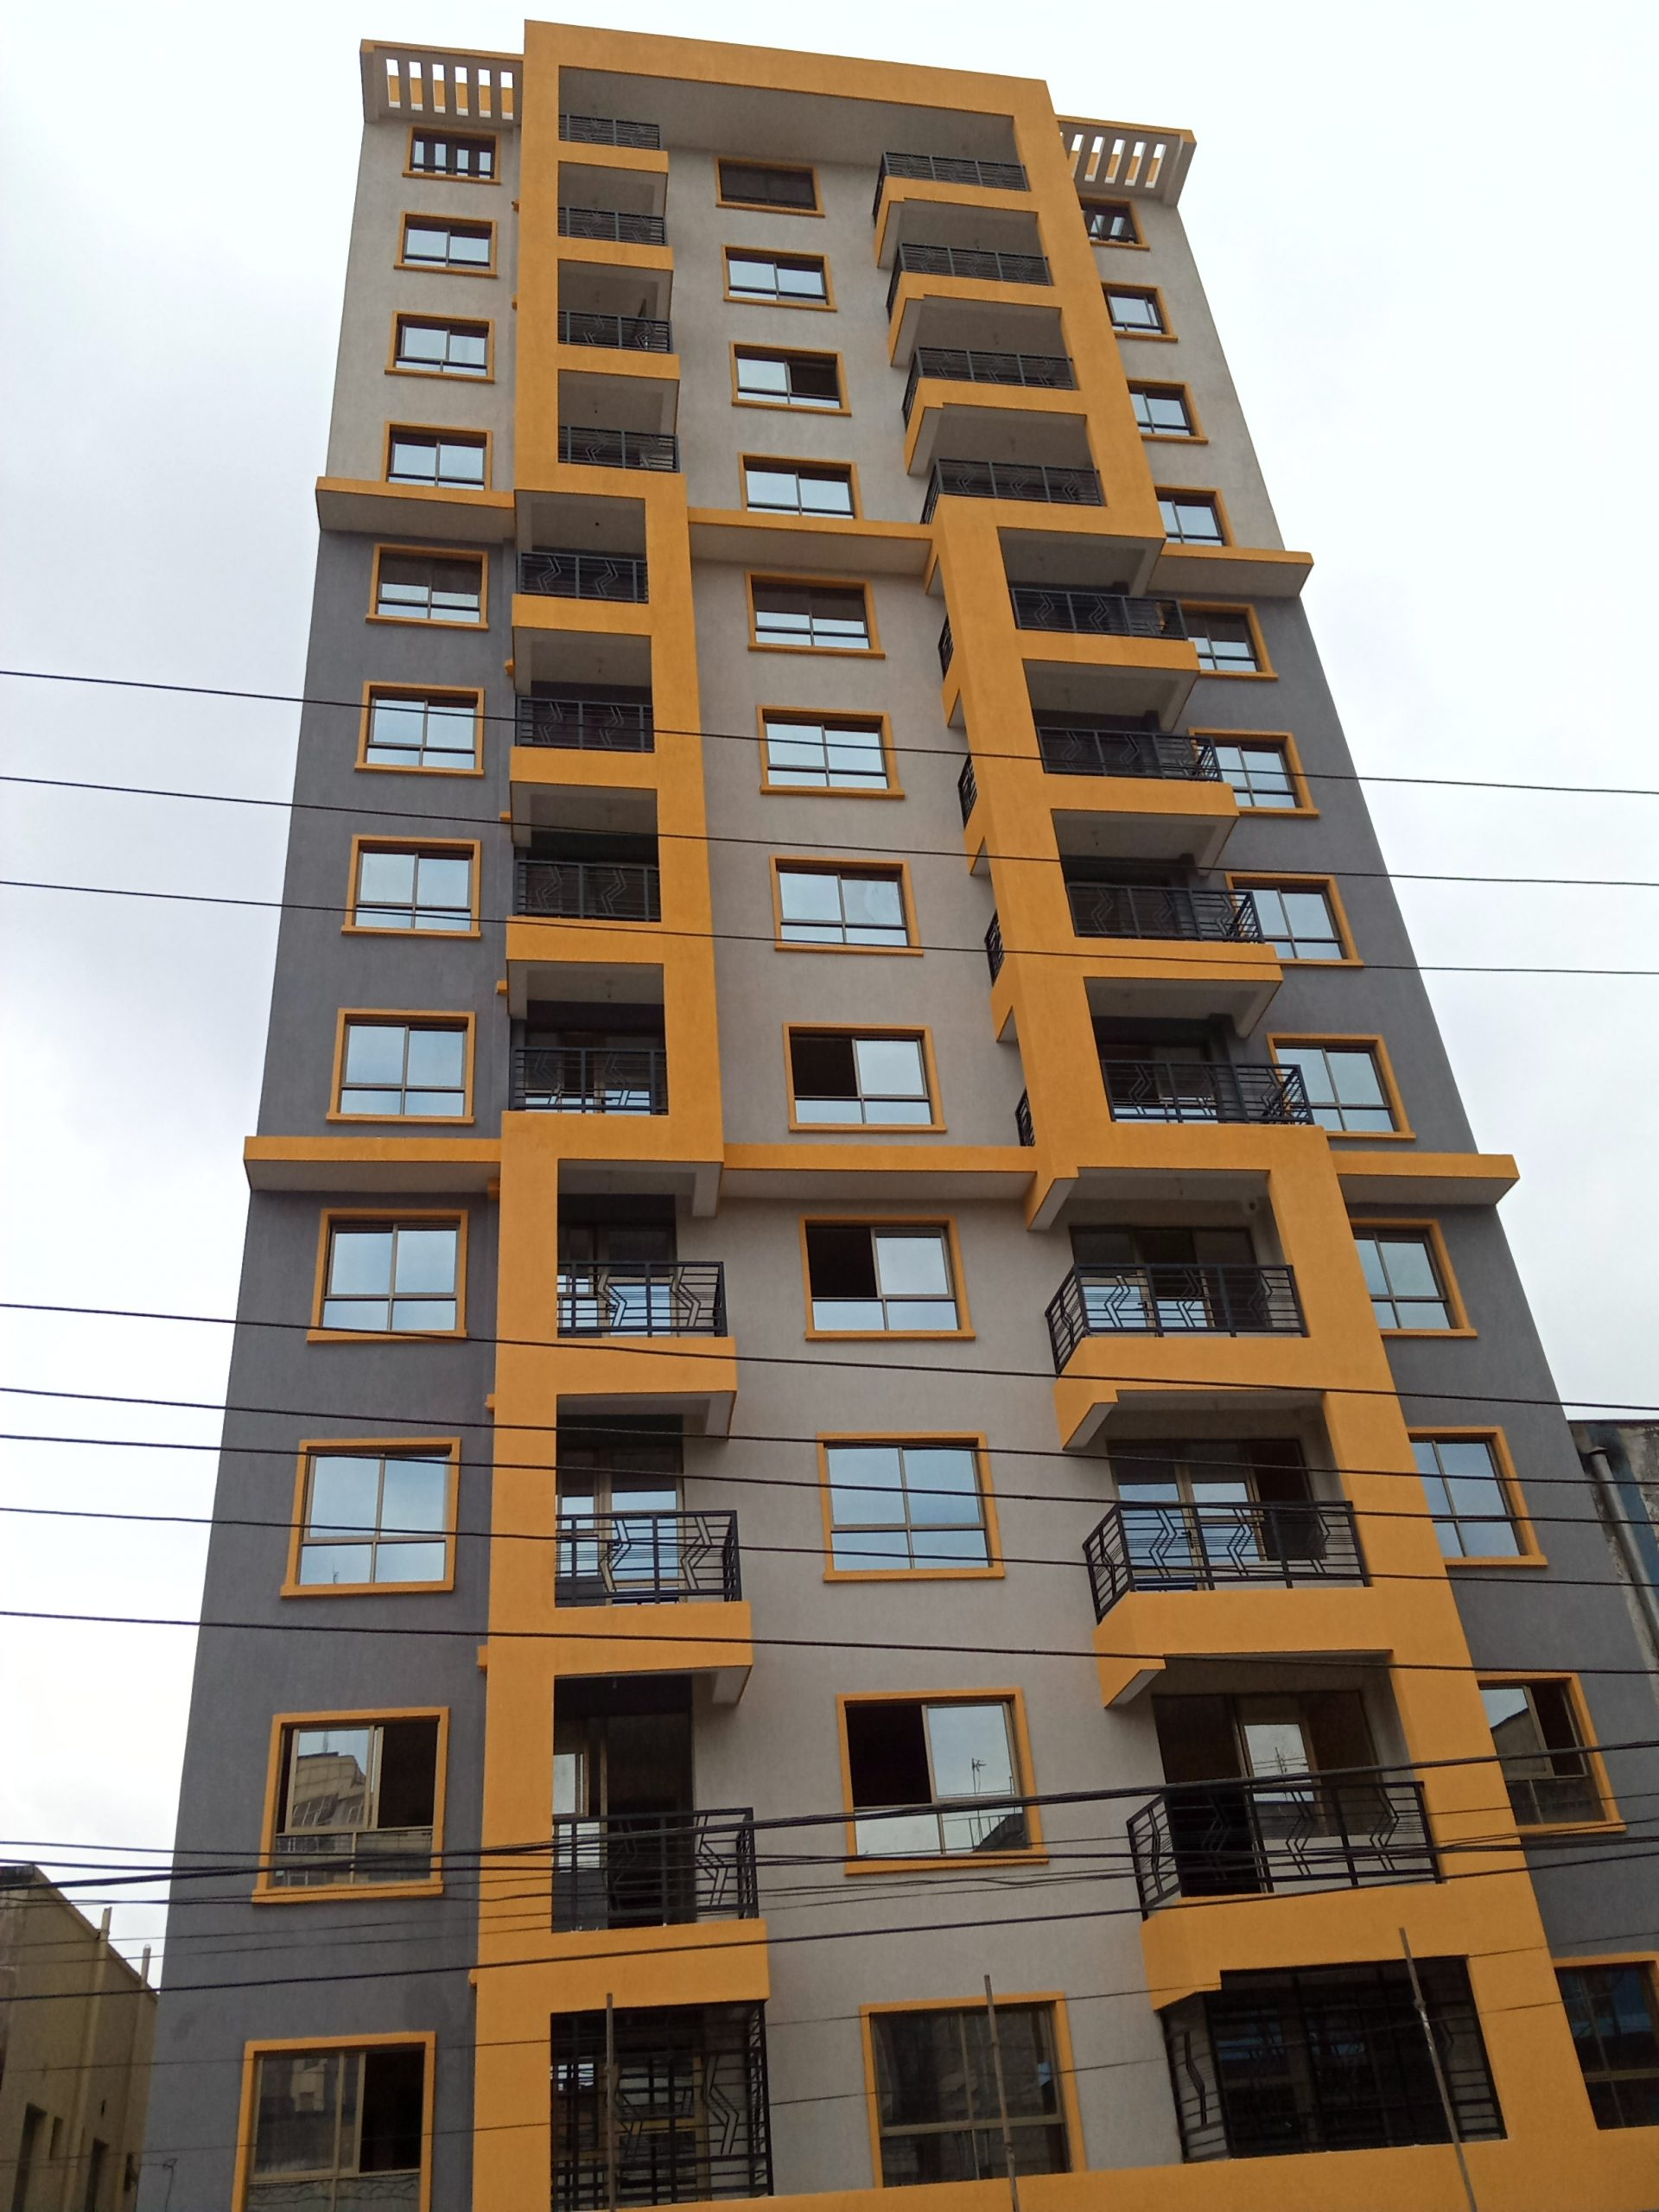 City View Suites, For Sale in Ngara, Executive Studio Apartment